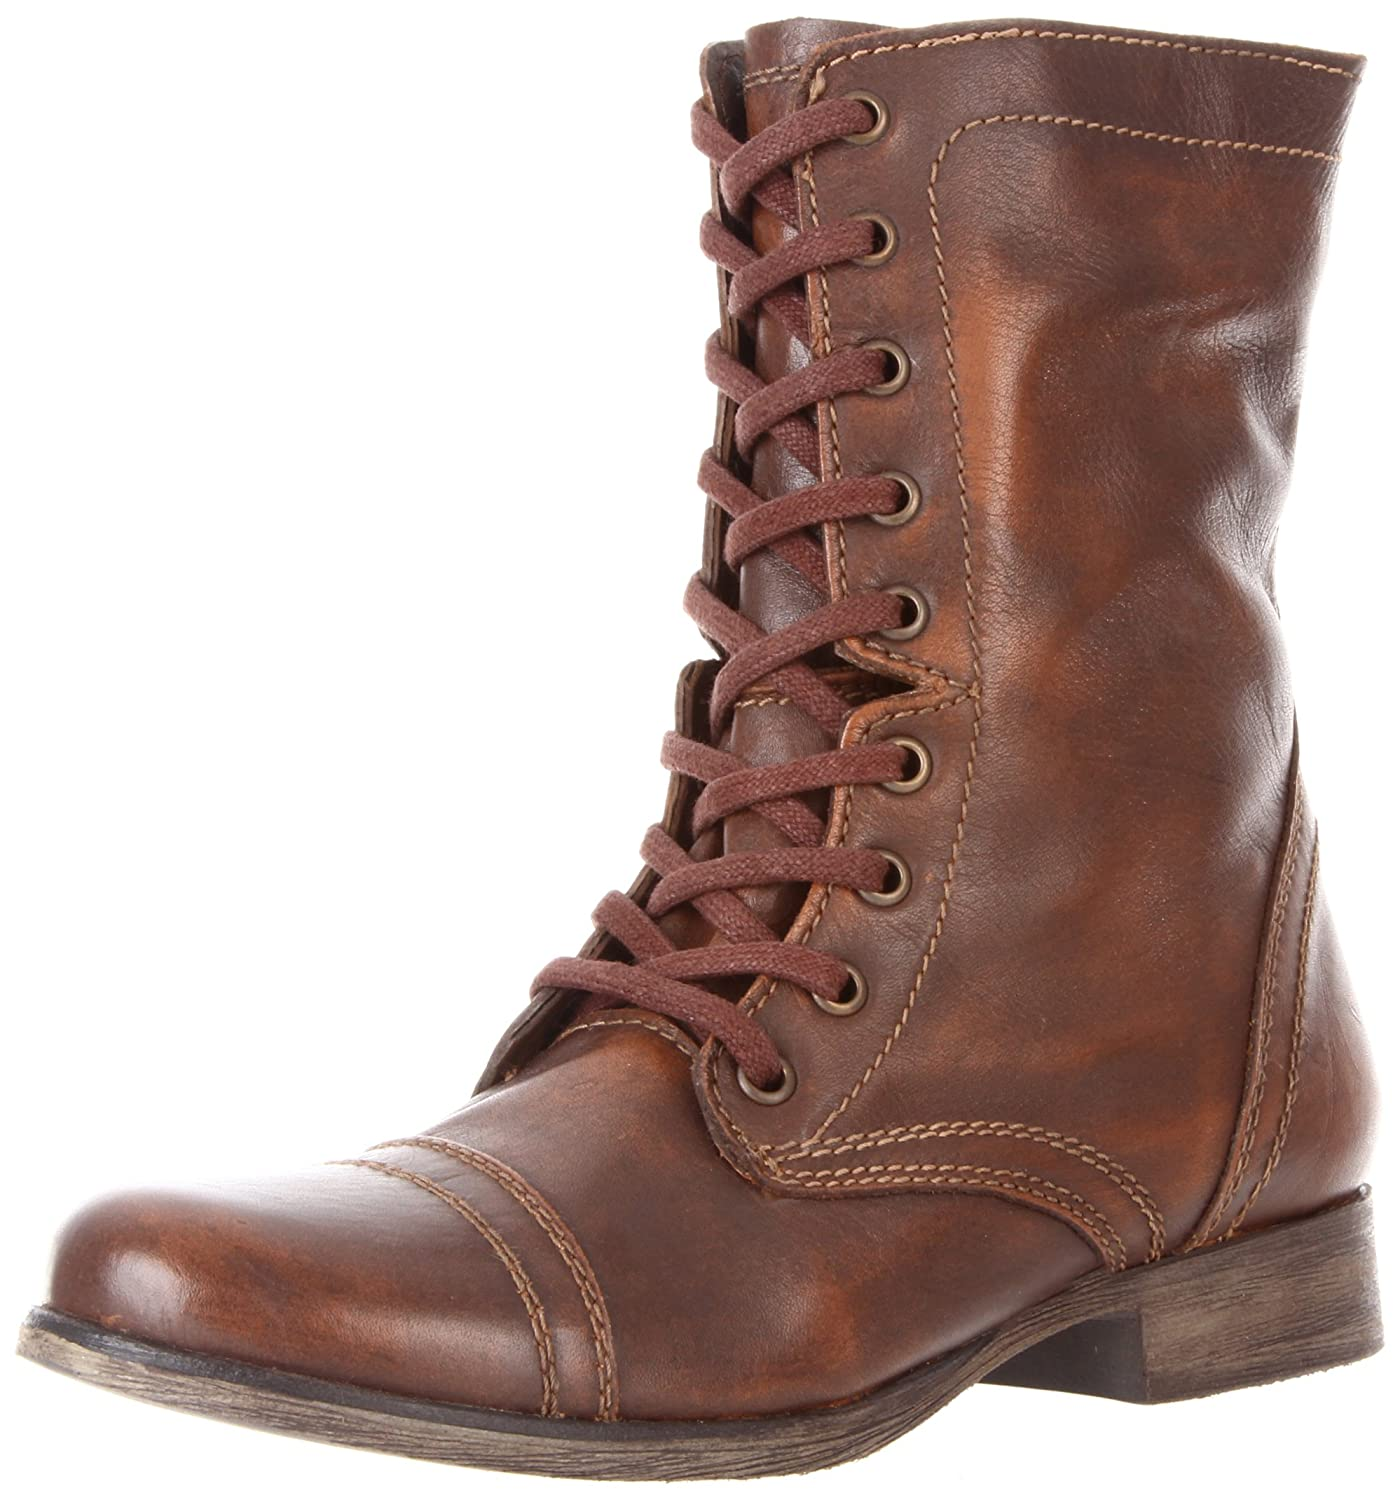 Steve Madden Women's Troopa Lace-Up Boot B0040Q8UKW 11 B(M) US|Cognac Leather